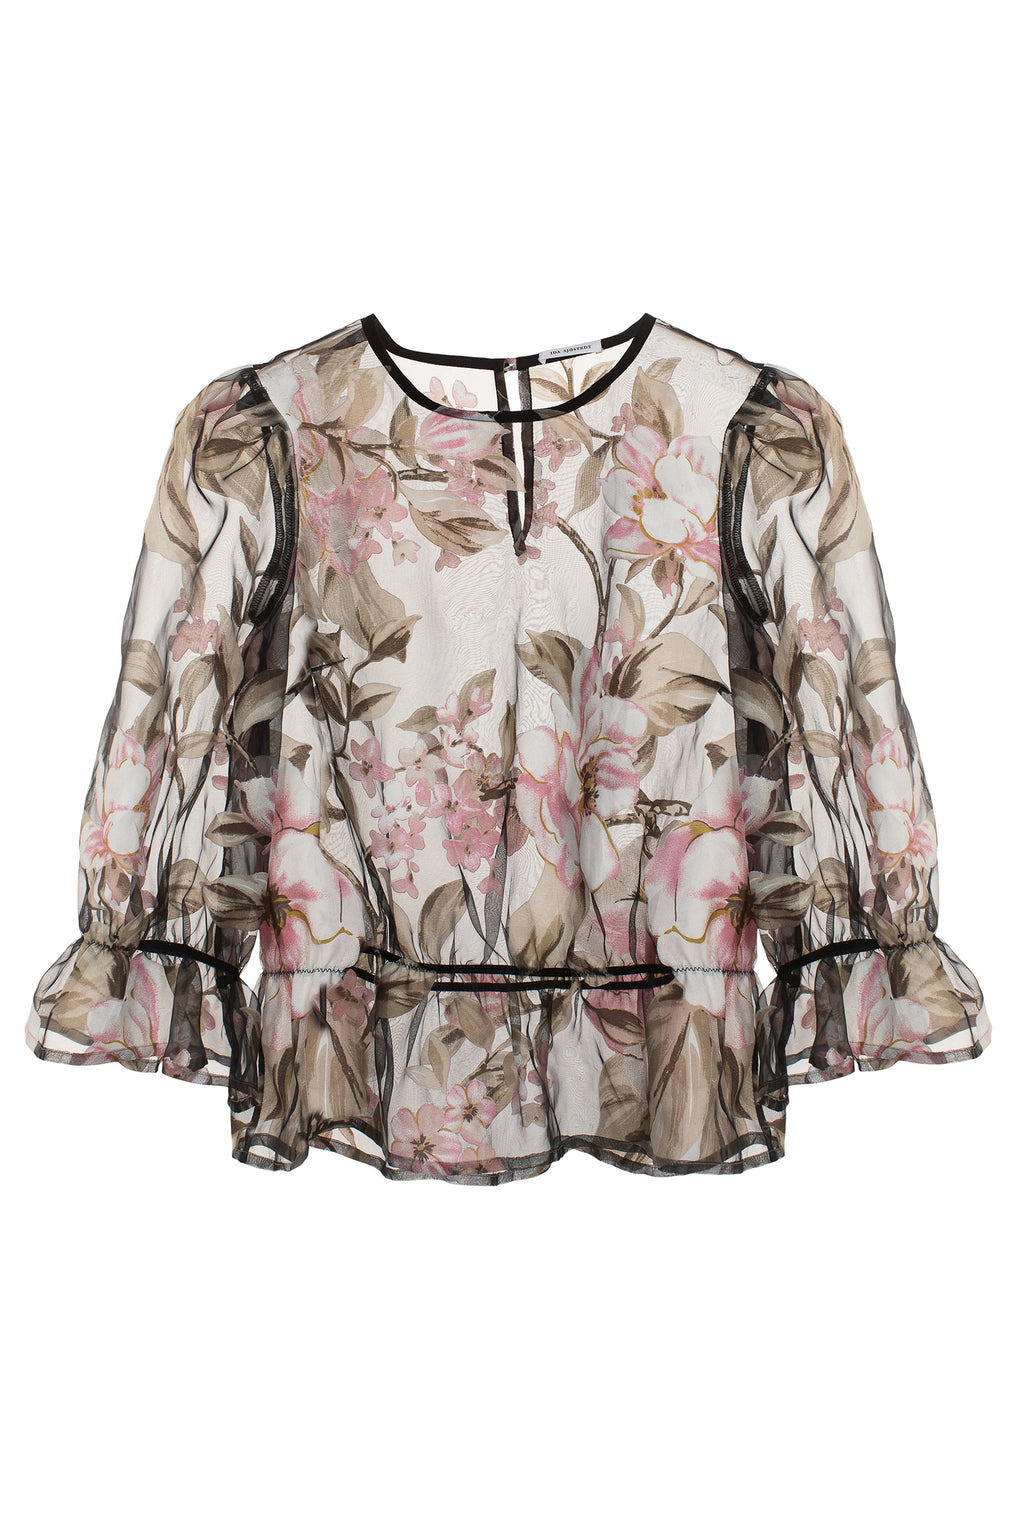 SS20 Orlando Top Pink Florals On Black